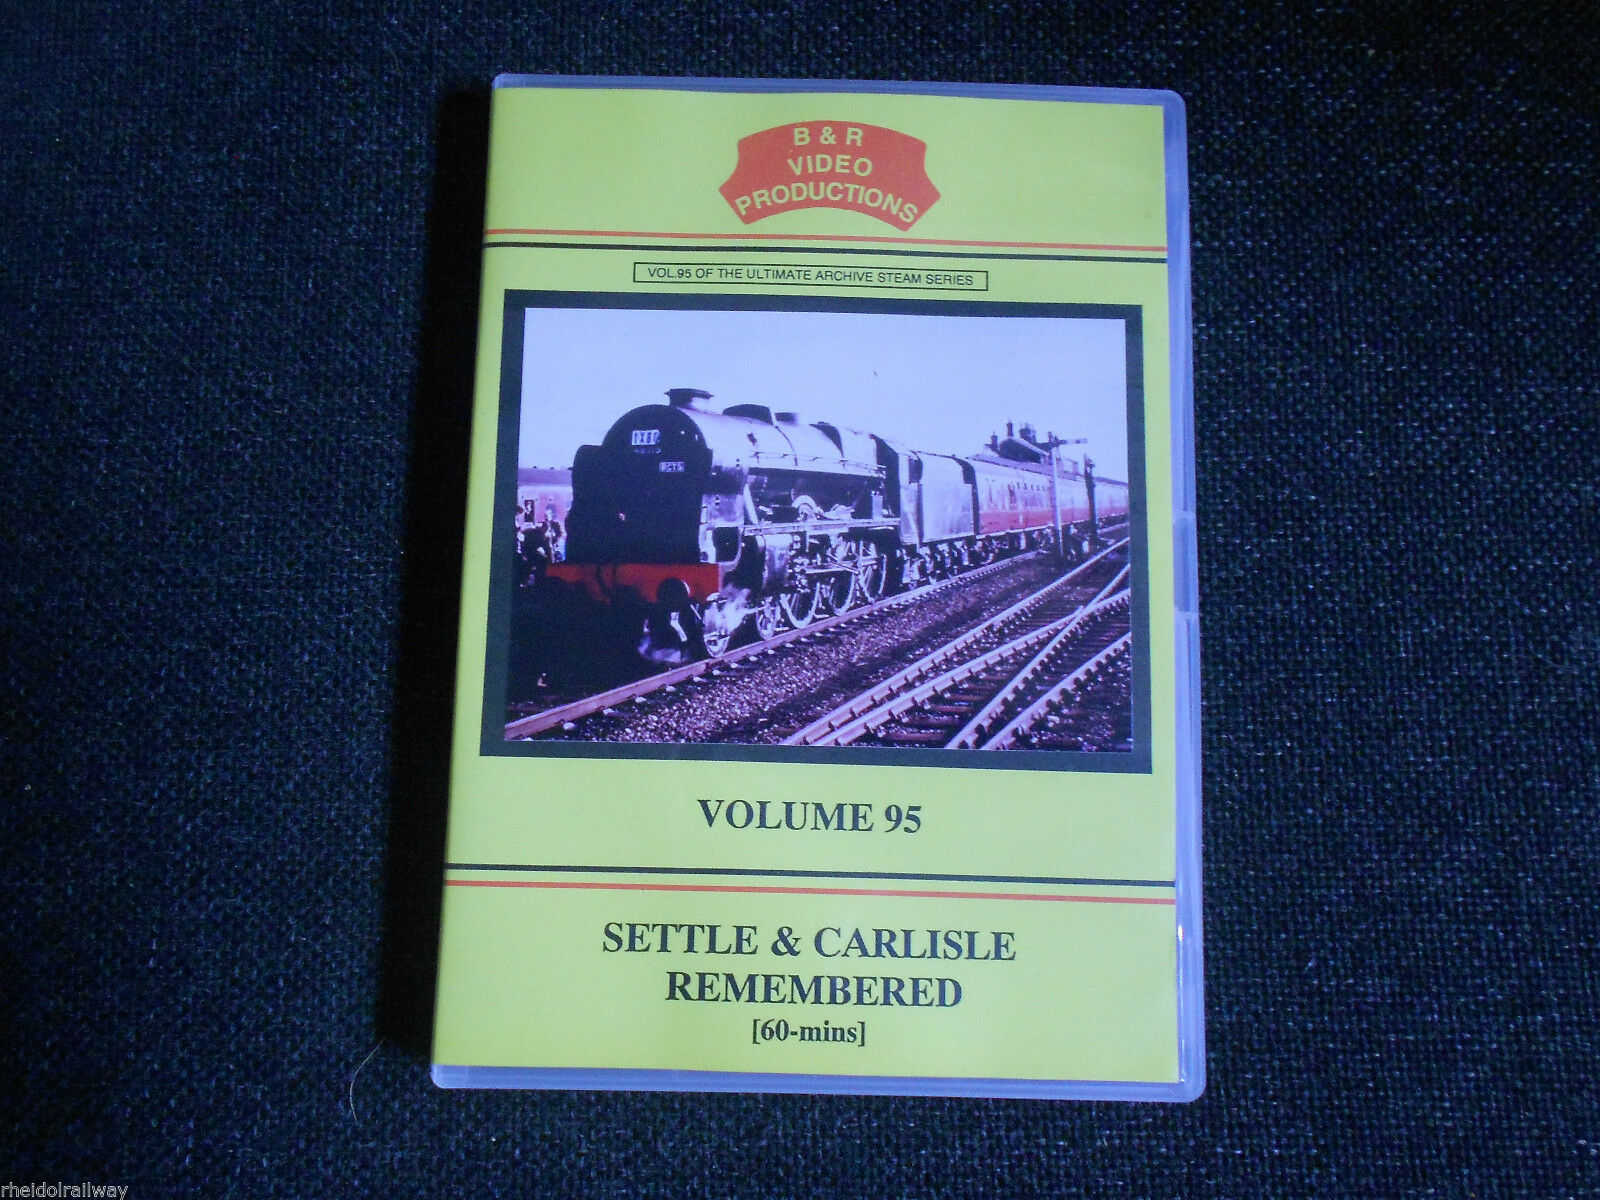 Keighley, Hellifield, Dent, Settle & Carlisle Remembered Part 1, B&R Vol 95 DVD - The Vale of Rheidol Railway